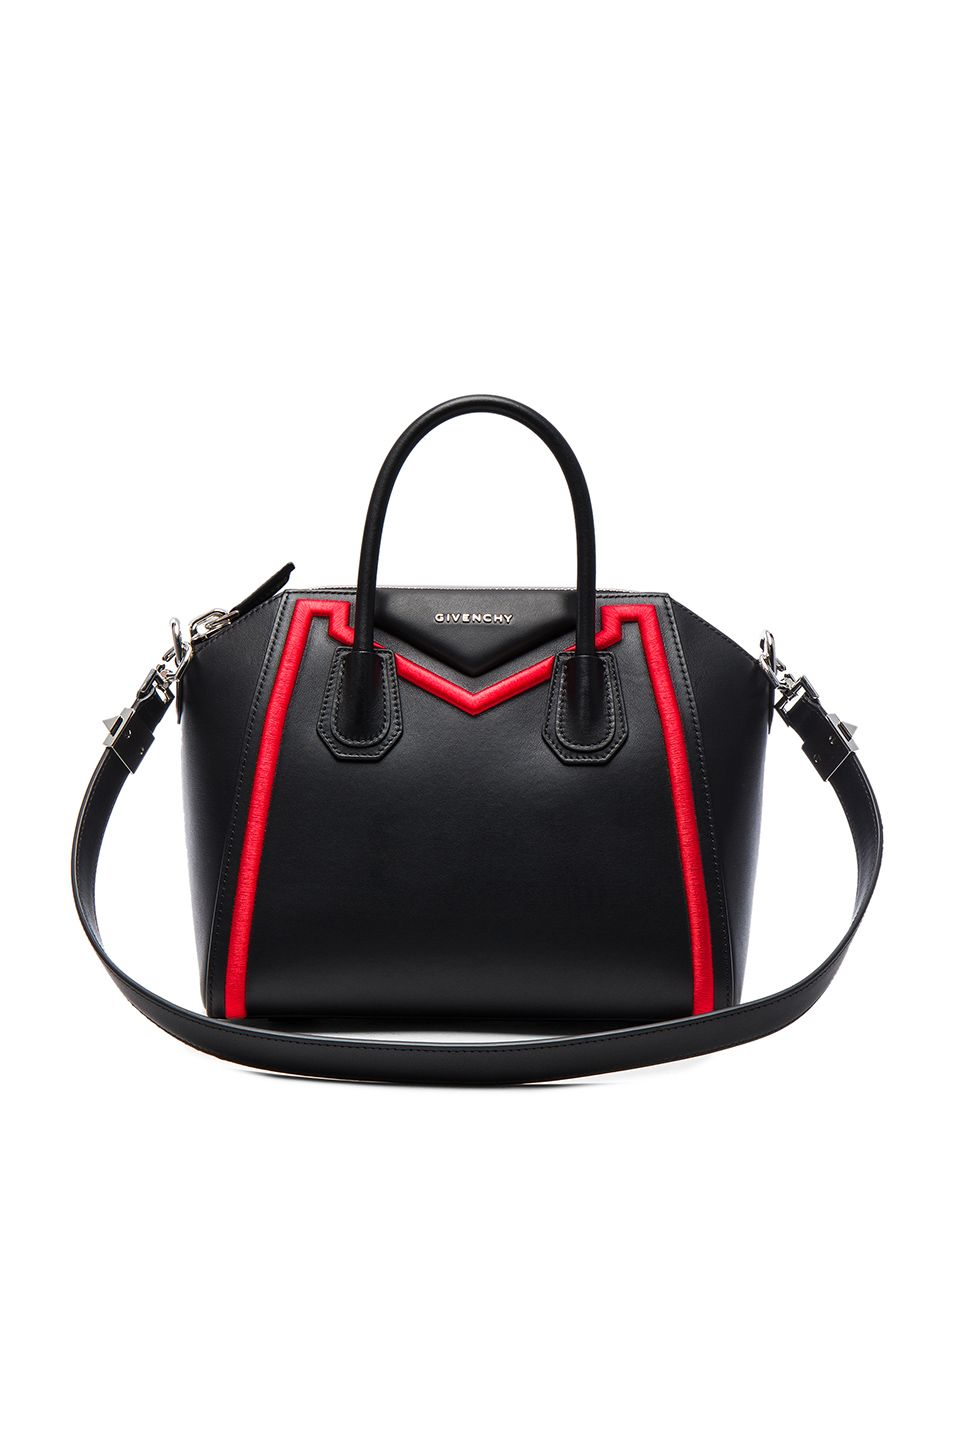 dd82155c09 GIVENCHY Small Embroidered Frame Antigona. #givenchy #bags #shoulder bags  #hand bags #canvas #leather #lining #